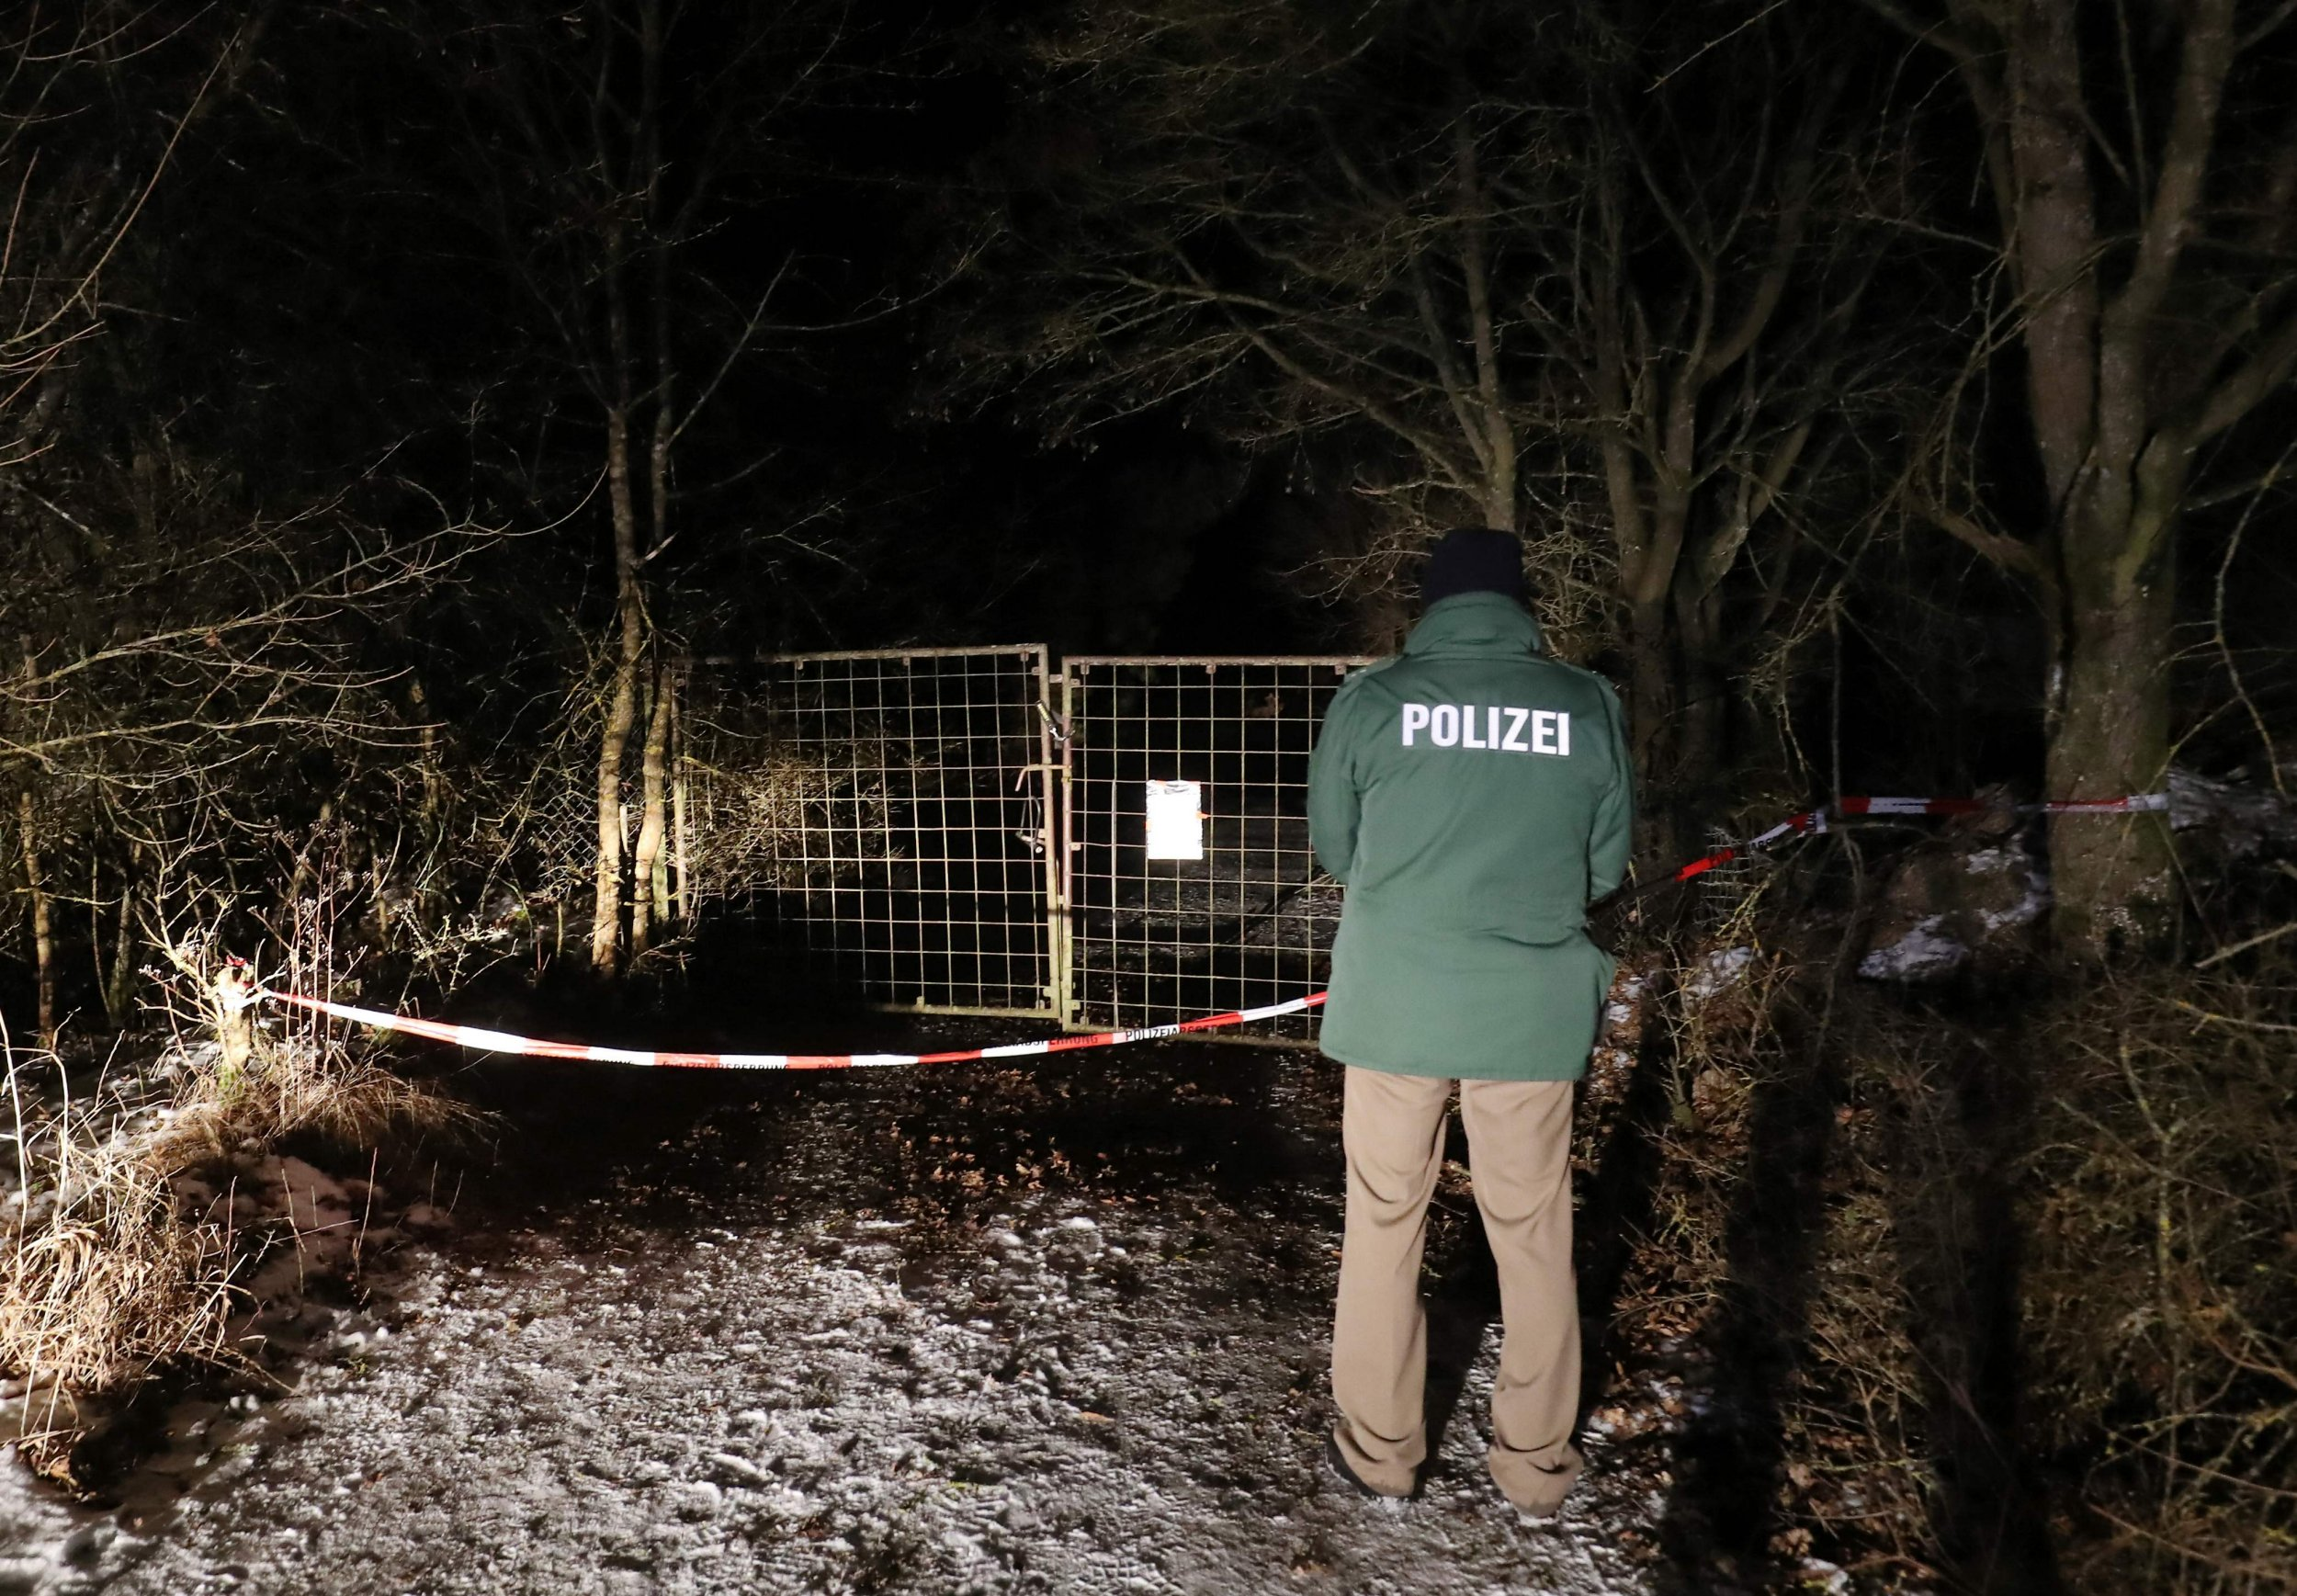 A policeman stands in front of an entrance leading to the site where six teenagers were found dead after holding a party in a garden near Arnstein, southern Germany, on January 29, 2017. The youths were found by the owner of the shed, whose son and daughter were among the victims. / AFP PHOTO / dpa / Daniel Karmann / Germany OUTDANIEL KARMANN/AFP/Getty Images